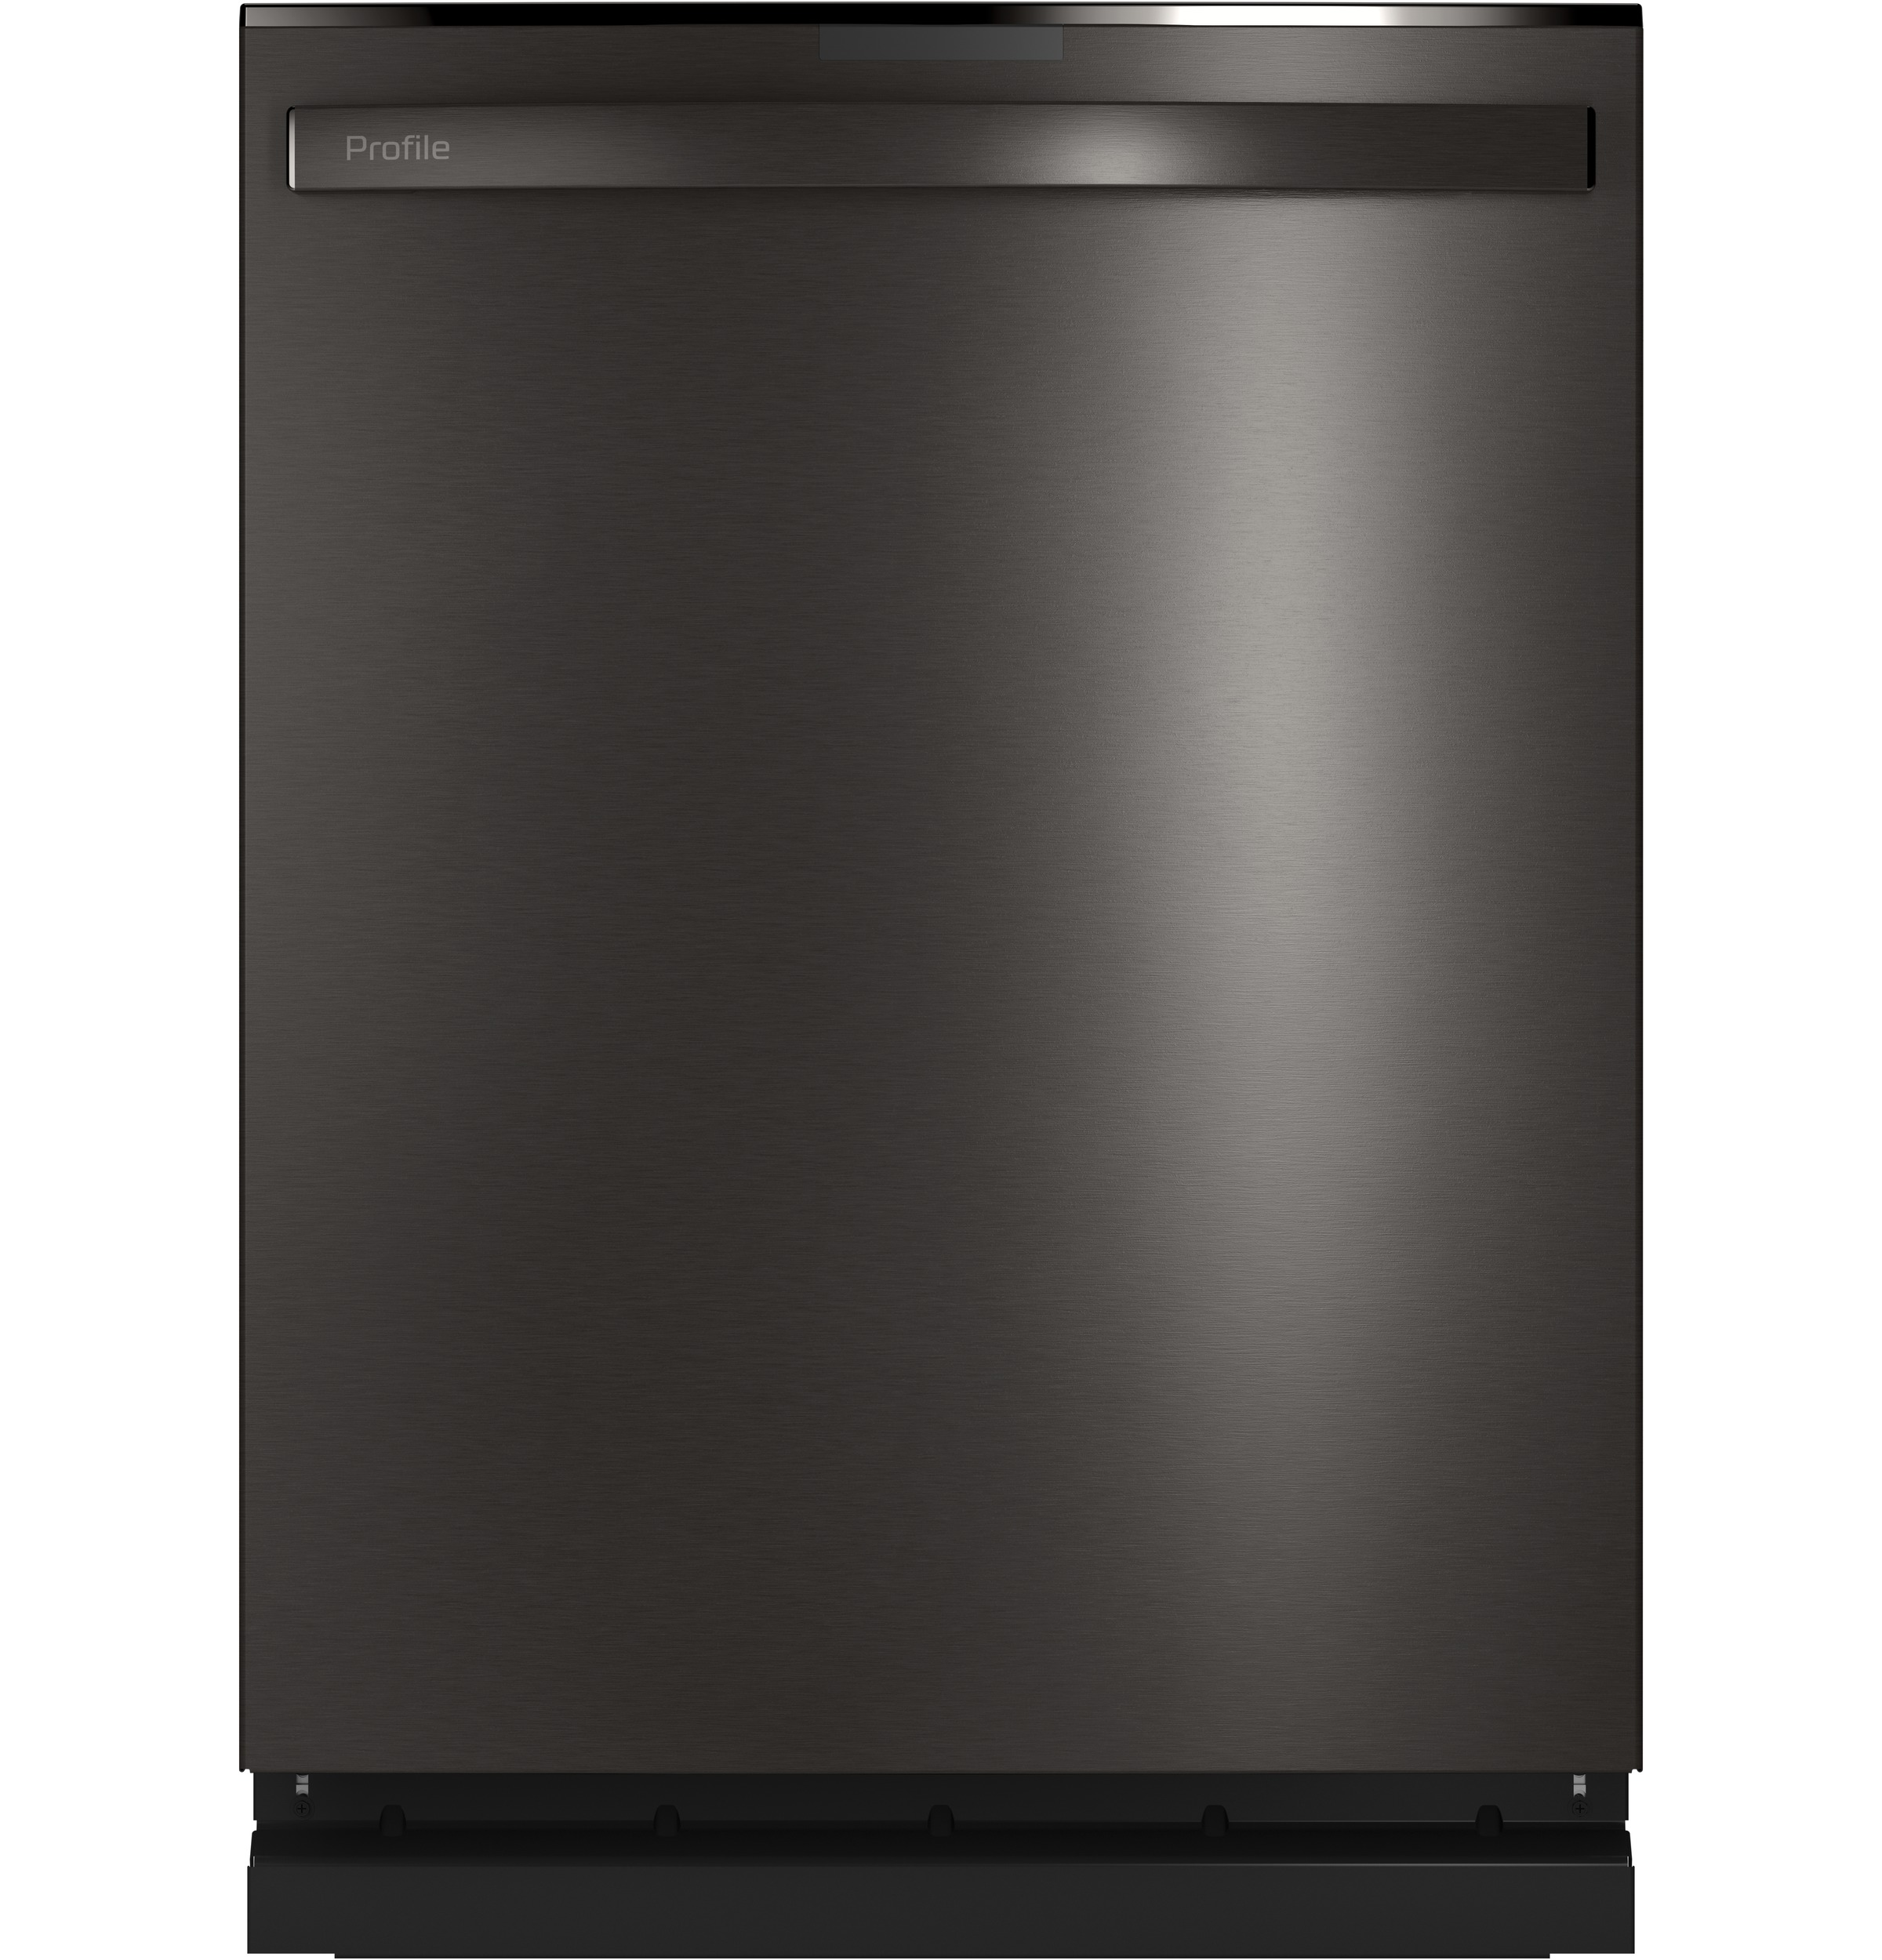 GE Profile GE Profile™ Stainless Steel Interior Dishwasher with Hidden Controls